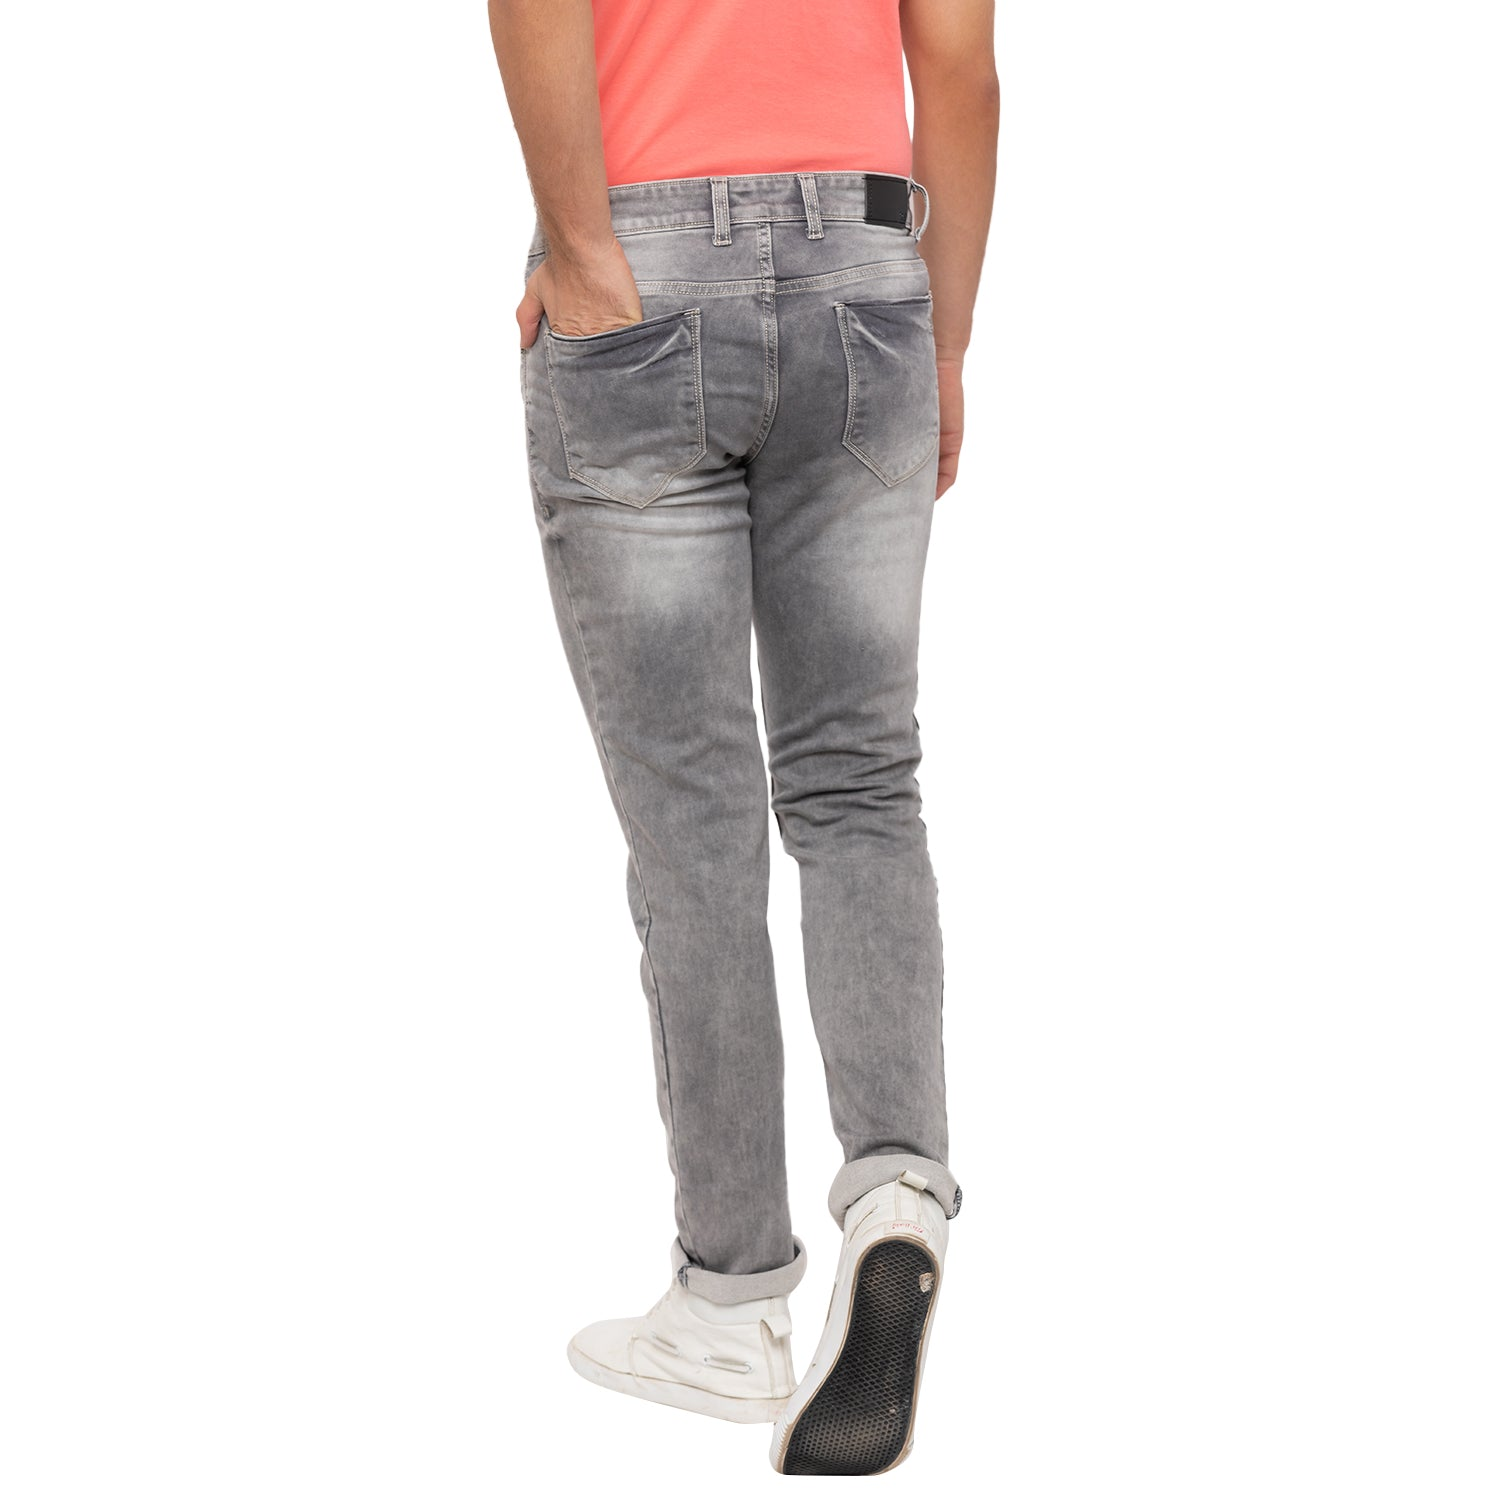 Globus Grey Washed Clean Look Jeans-3